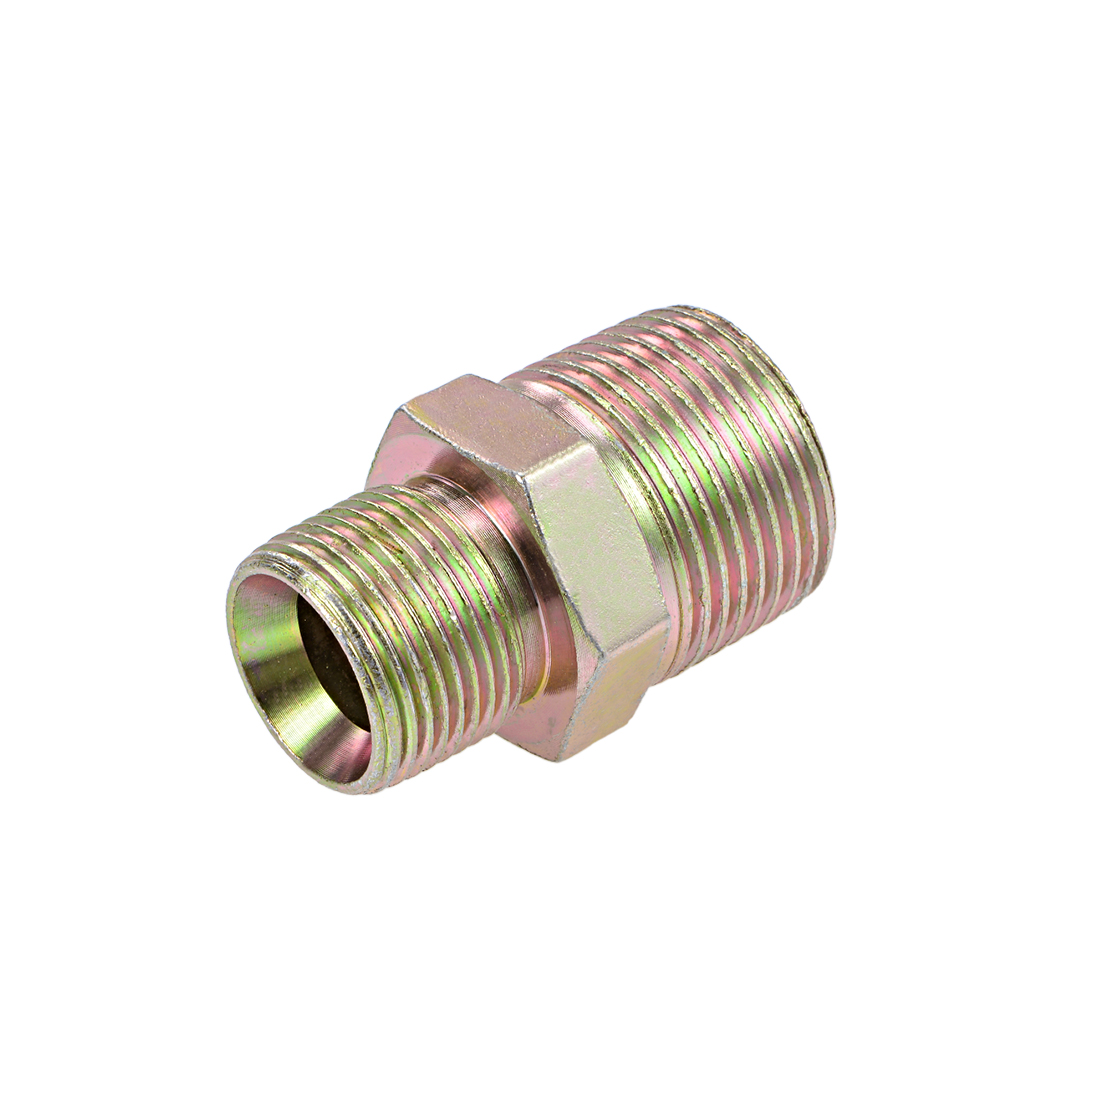 Reducing Pipe Fitting - Reducer Hex Nipple - 1 X 3/4 BSP Male Connector